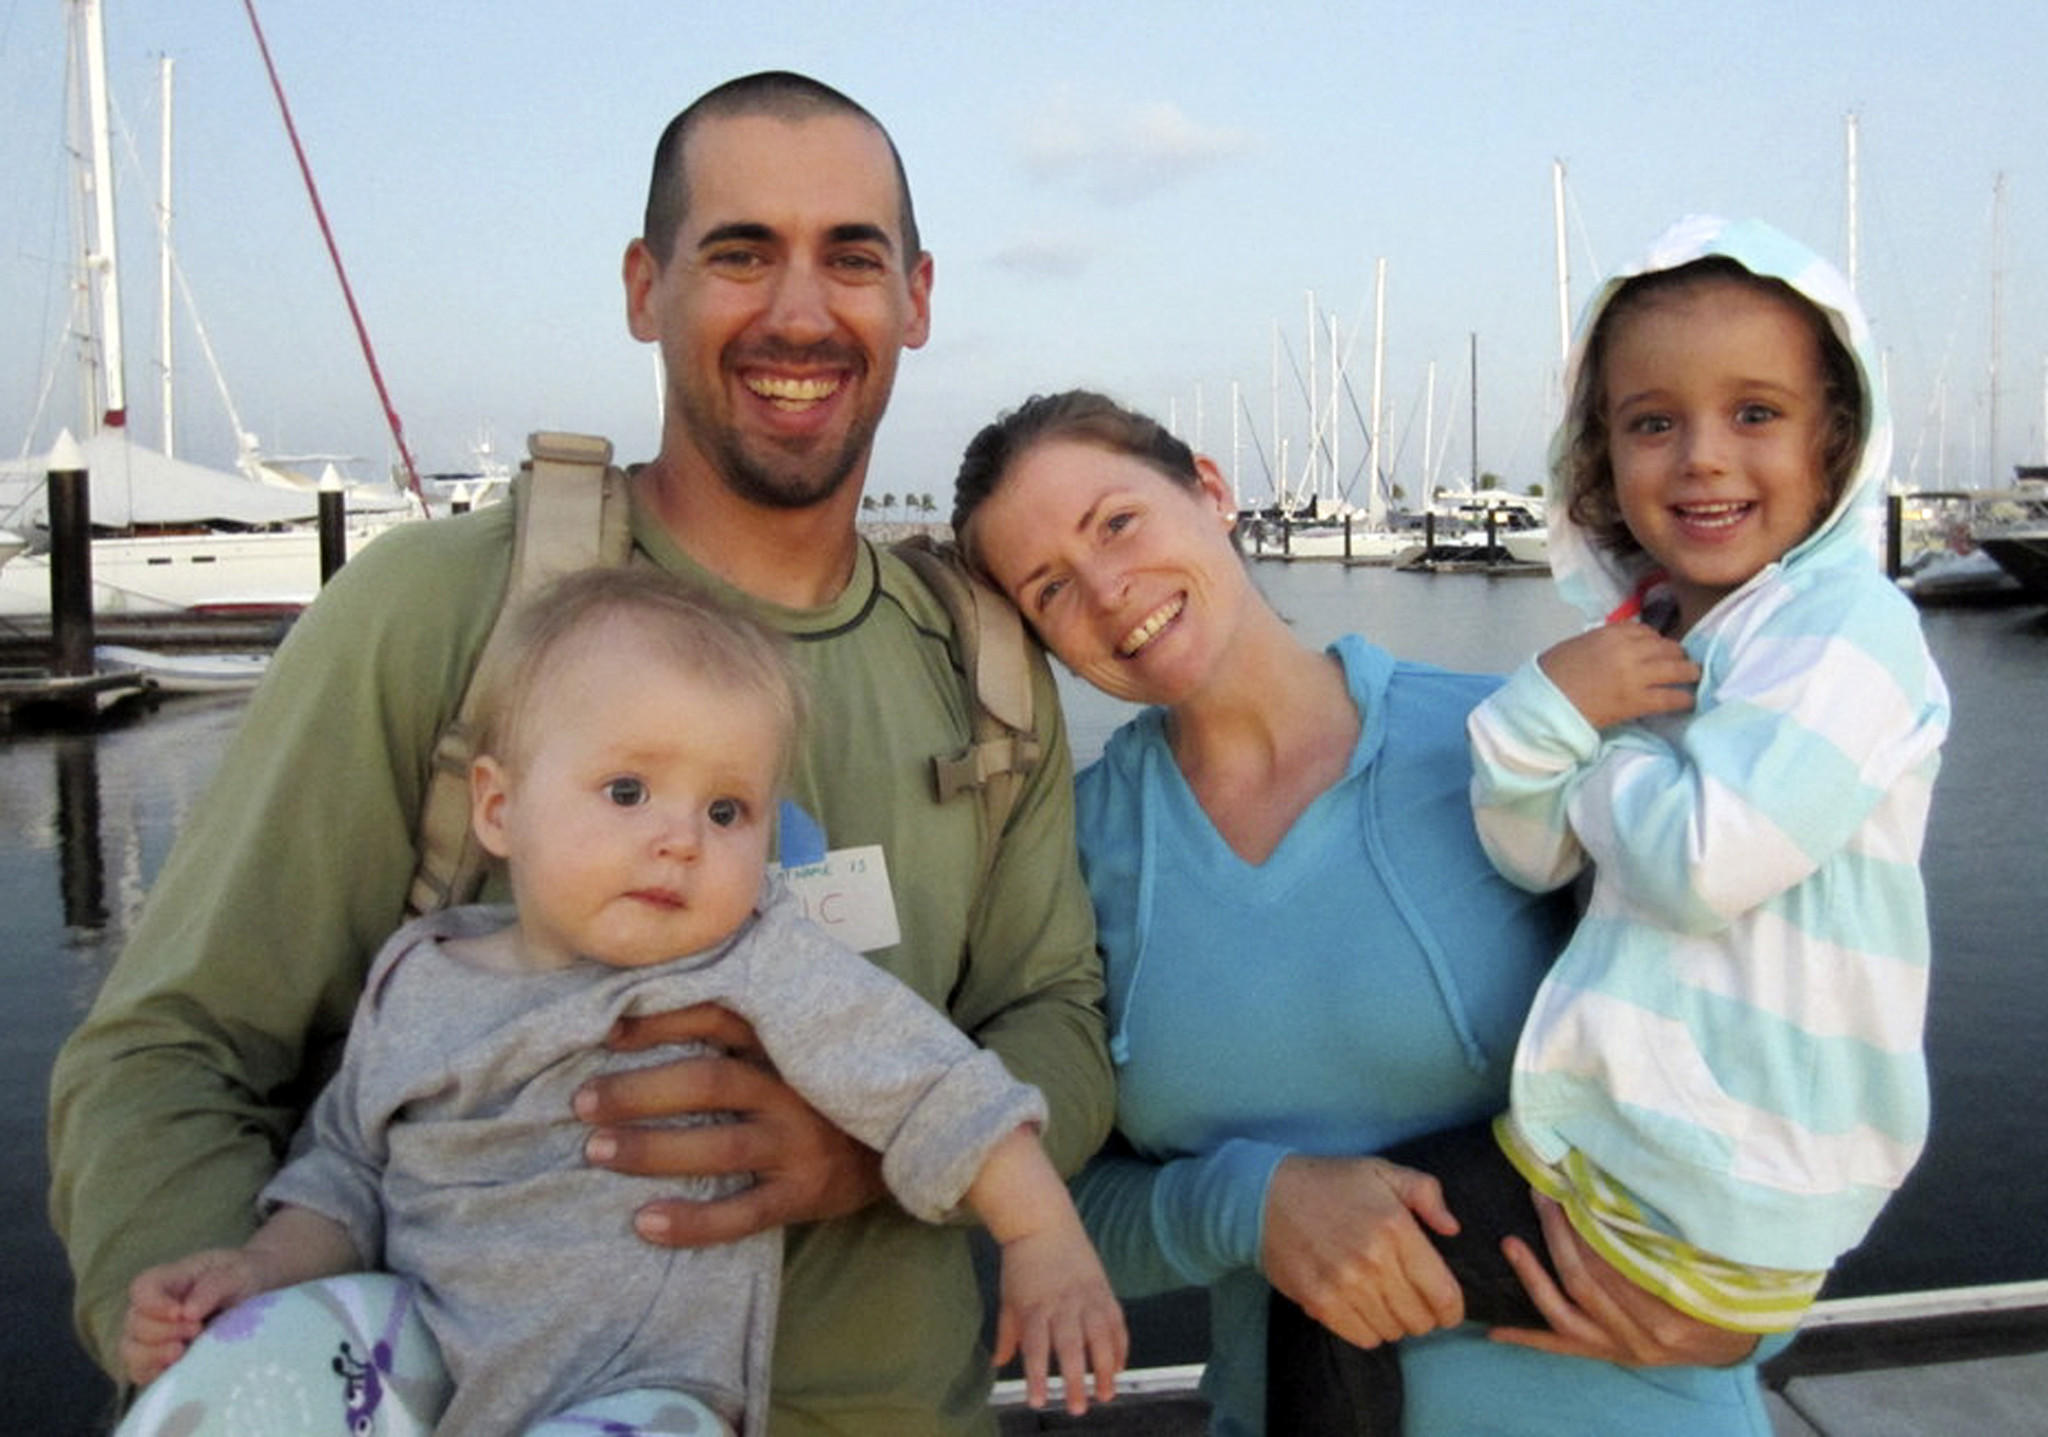 Eric and Charlotte Kaufman with daughters Lyra, left, and Cora. The Kaufmans have defended their decision to take the girls on a round-the-world sailing voyage that was cut short when Lyra became ill. The family was rescued by the Coast Guard, Navy and California Air National Guard.